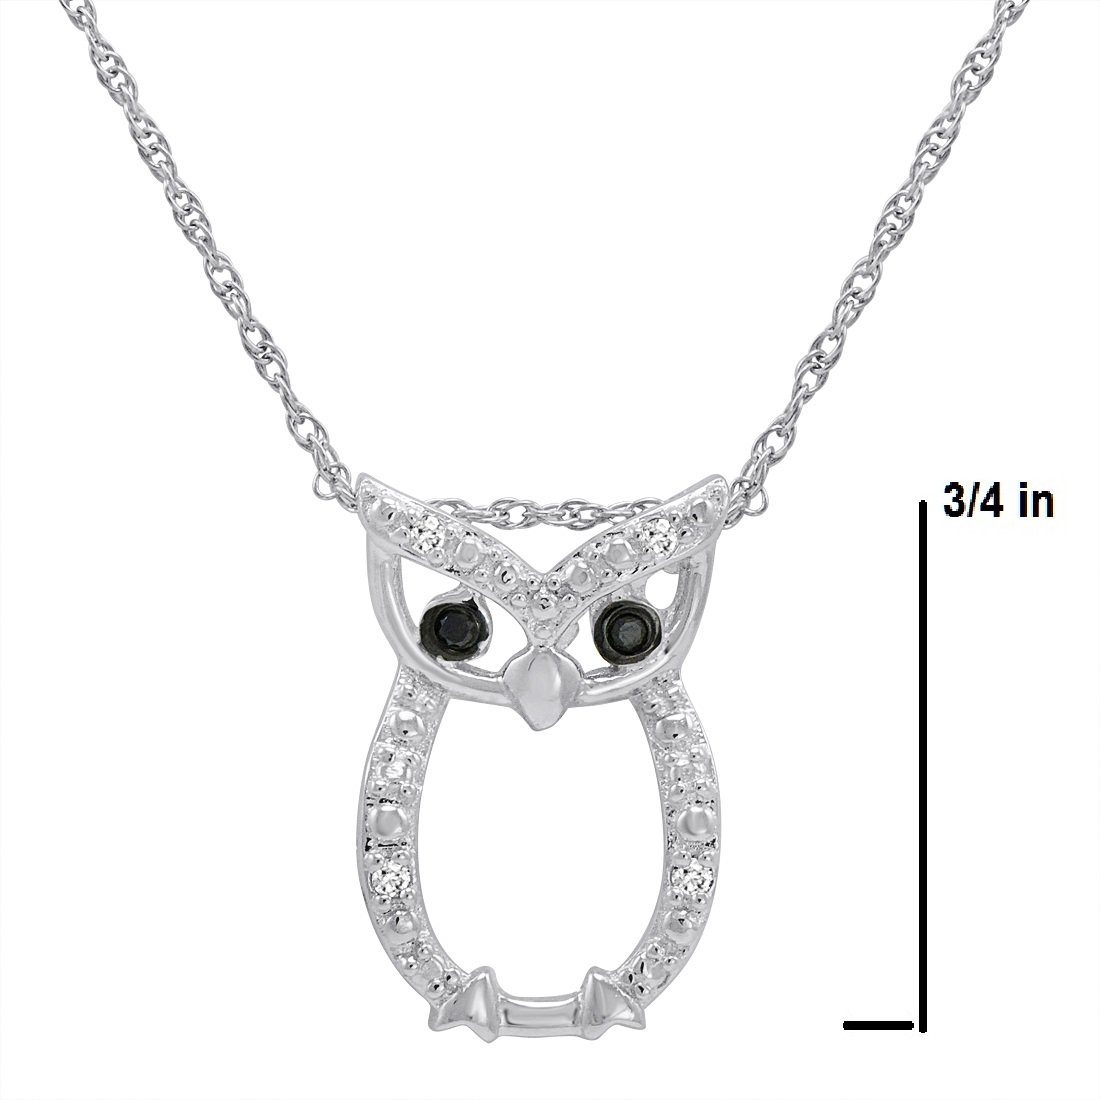 7944c2a784123 Sterling Silver Owl Pendant-Necklace with Black and White Diamond